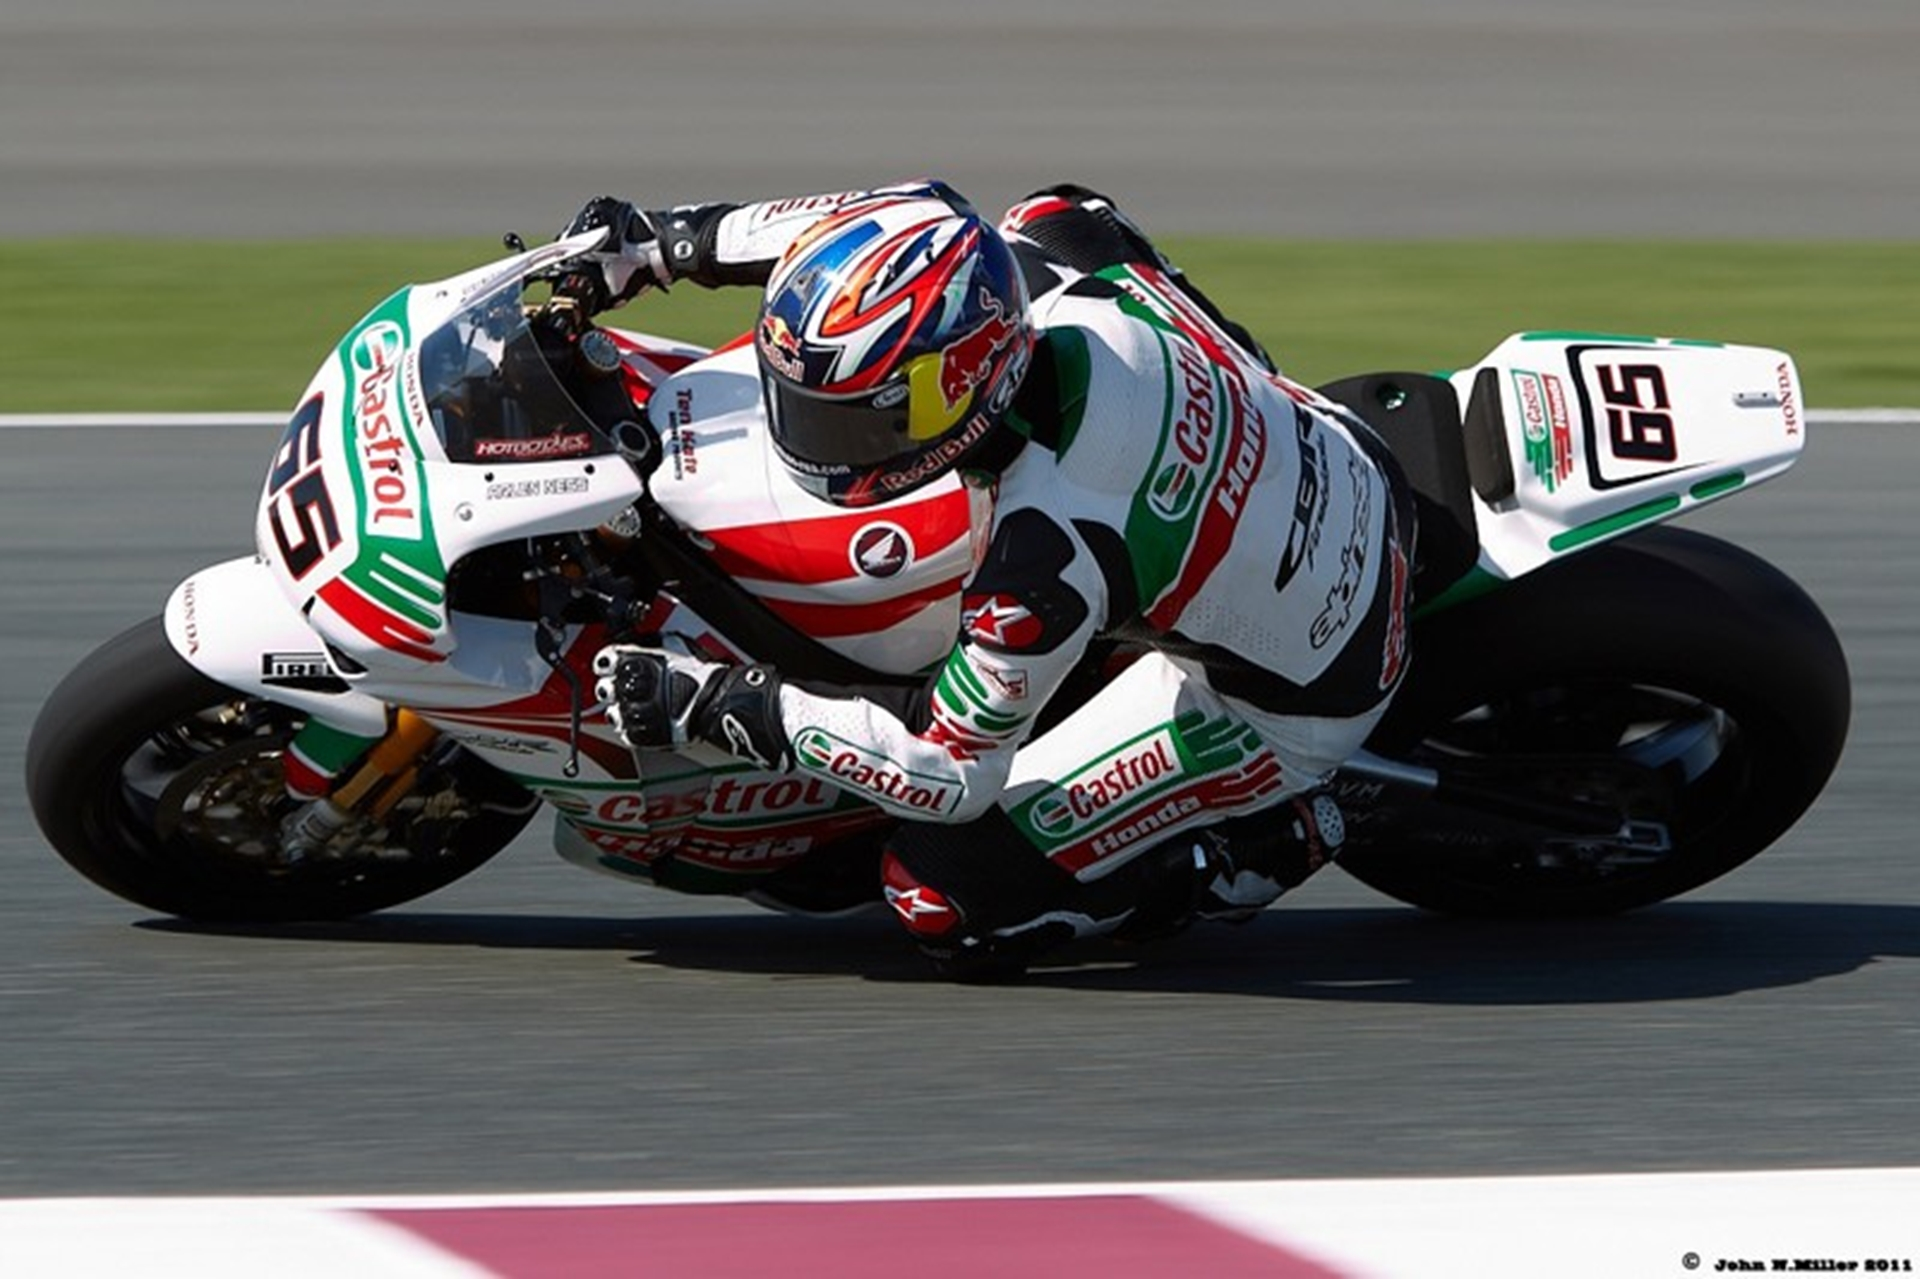 honda-castrol-racing-bike-2011